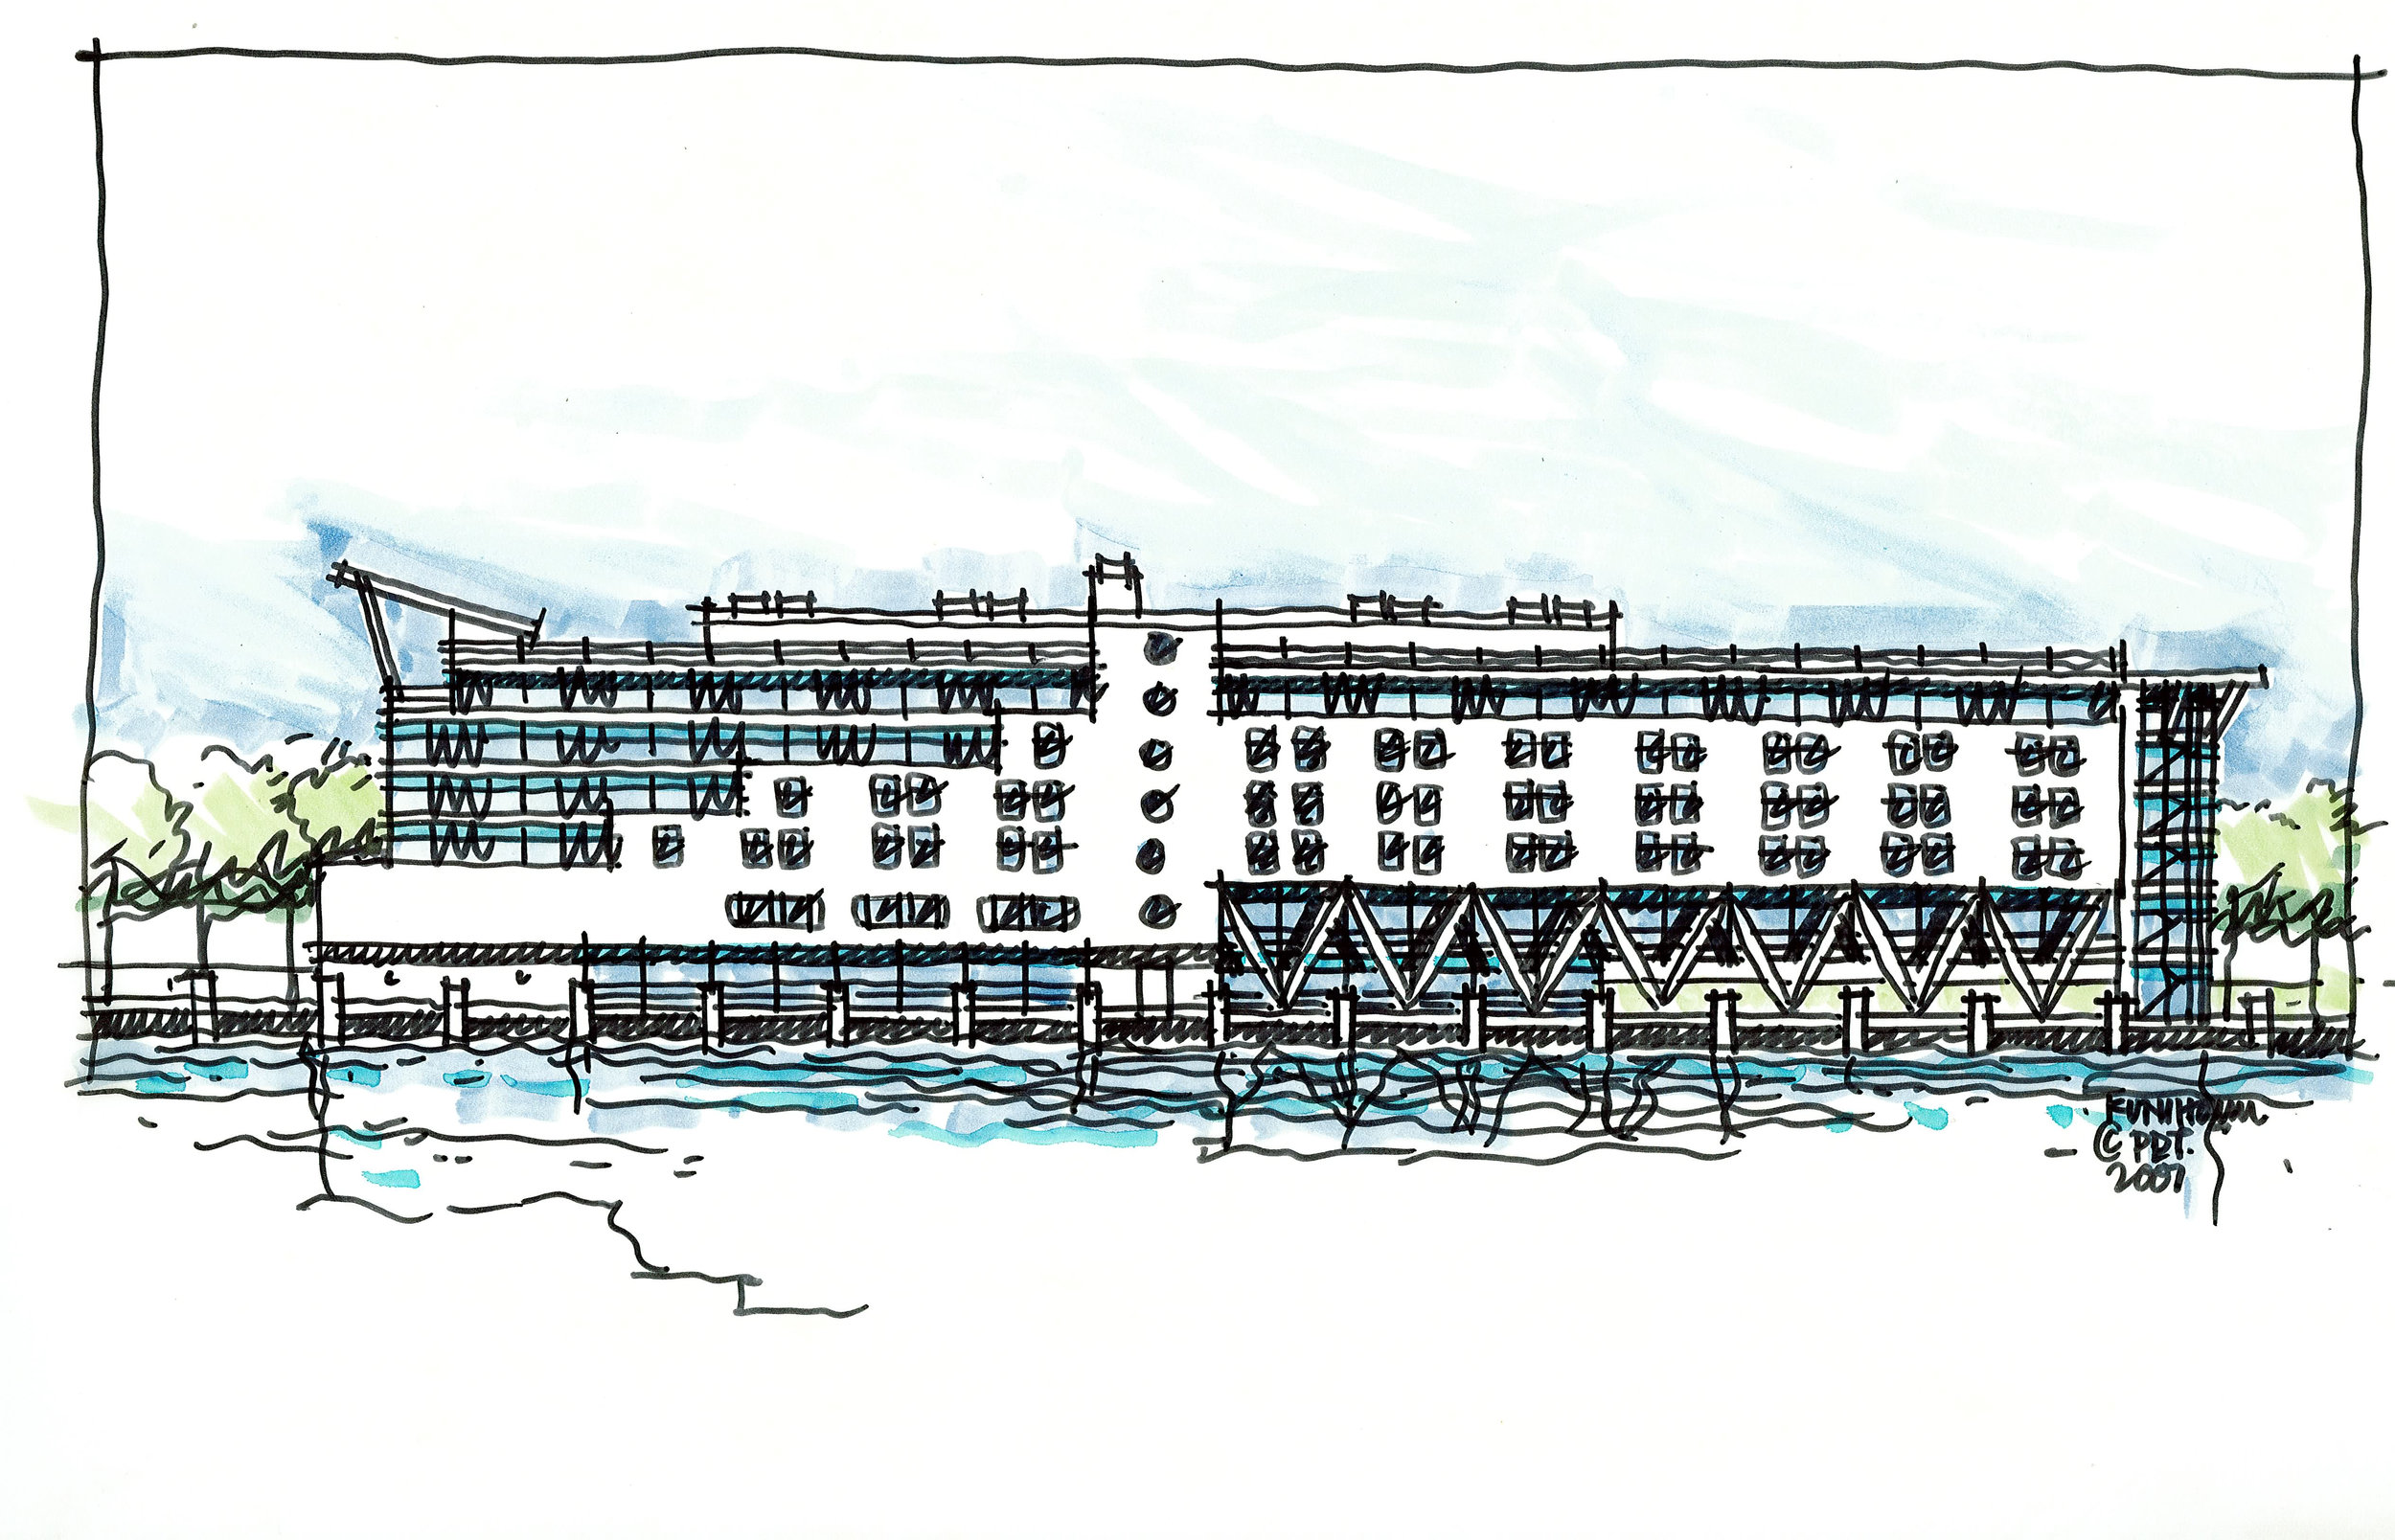 Elevation renderings, proposed hotel, Maine State Pier, Portland